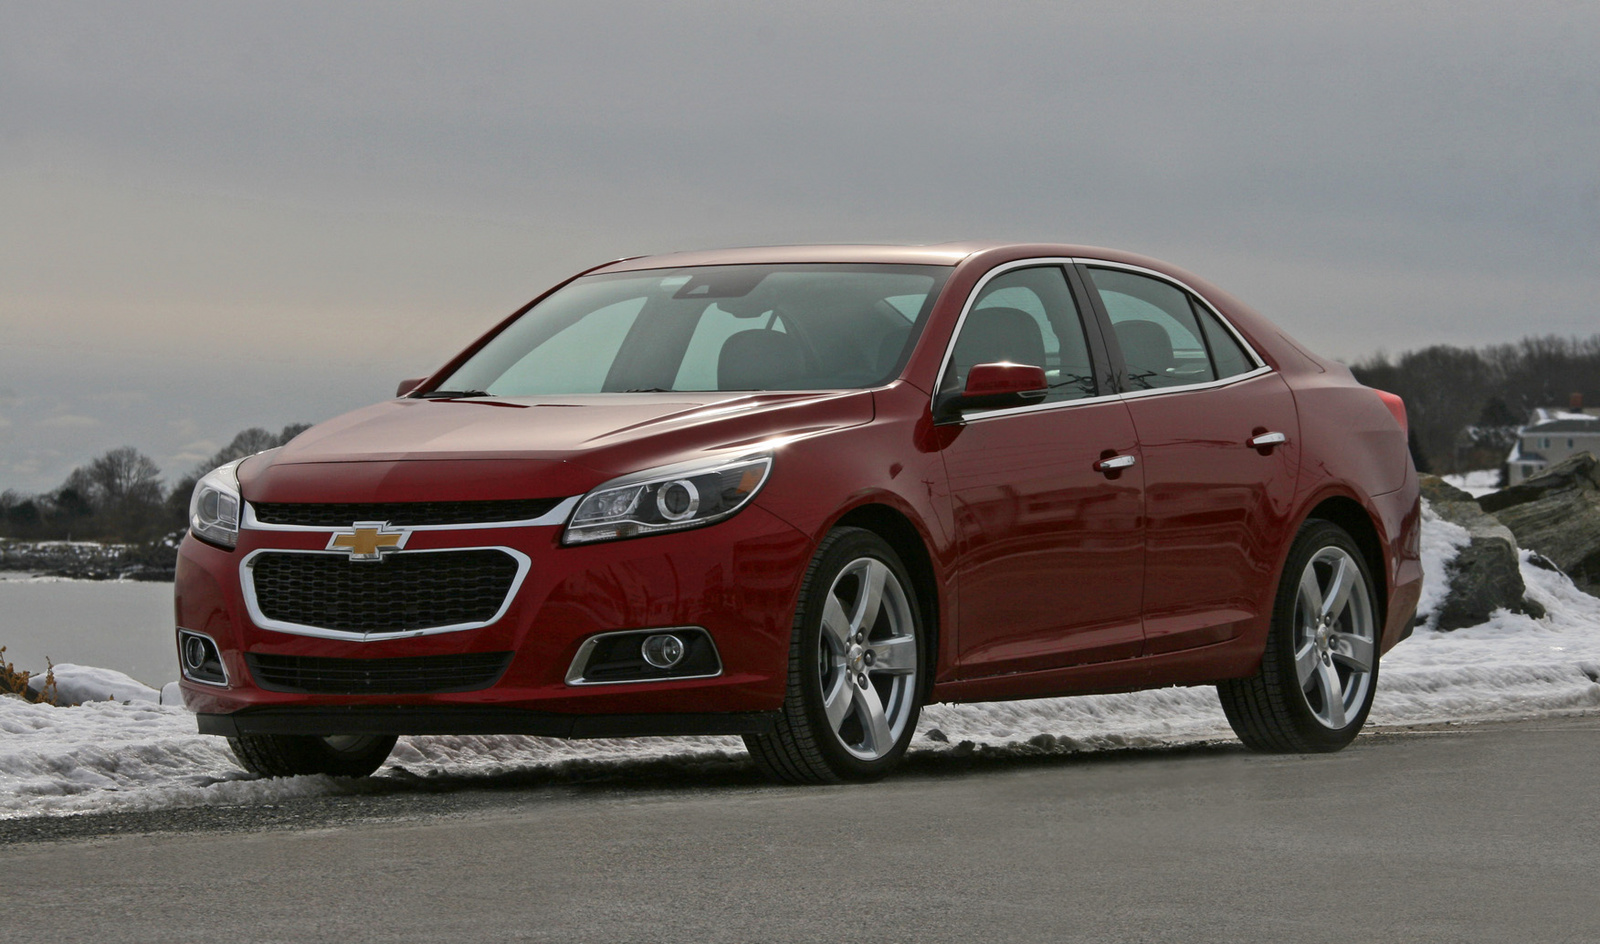 2014 chevrolet malibu test drive review cargurus. Black Bedroom Furniture Sets. Home Design Ideas